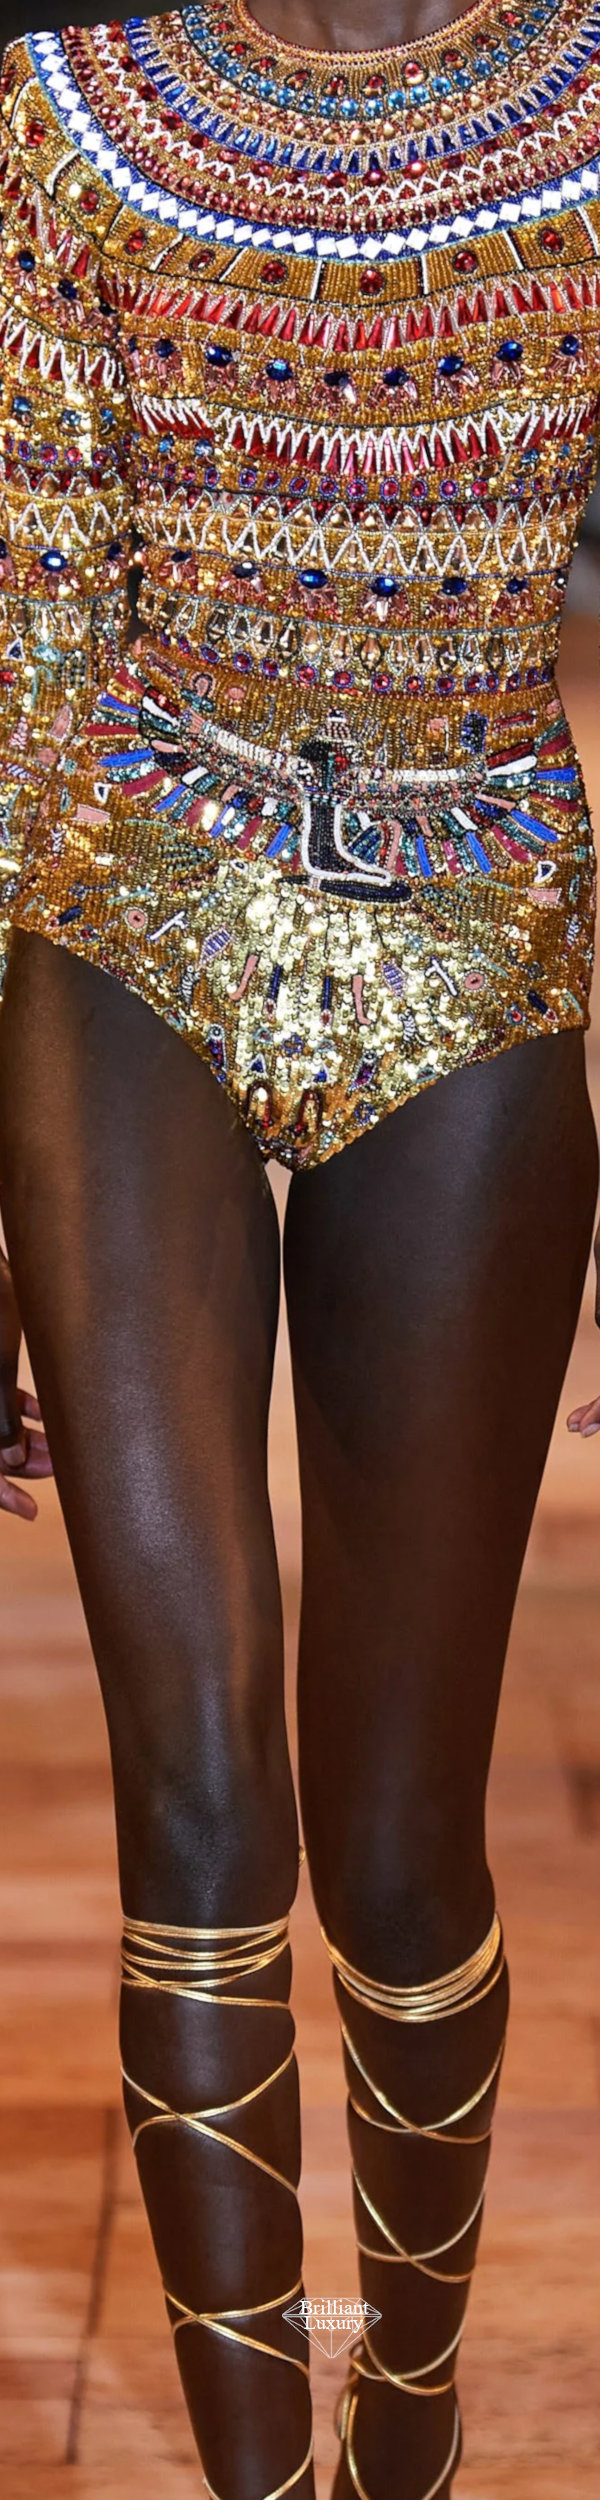 Zuhair Murad Spring 2020 Couture Embroidered Short Jumpsuit #fashion